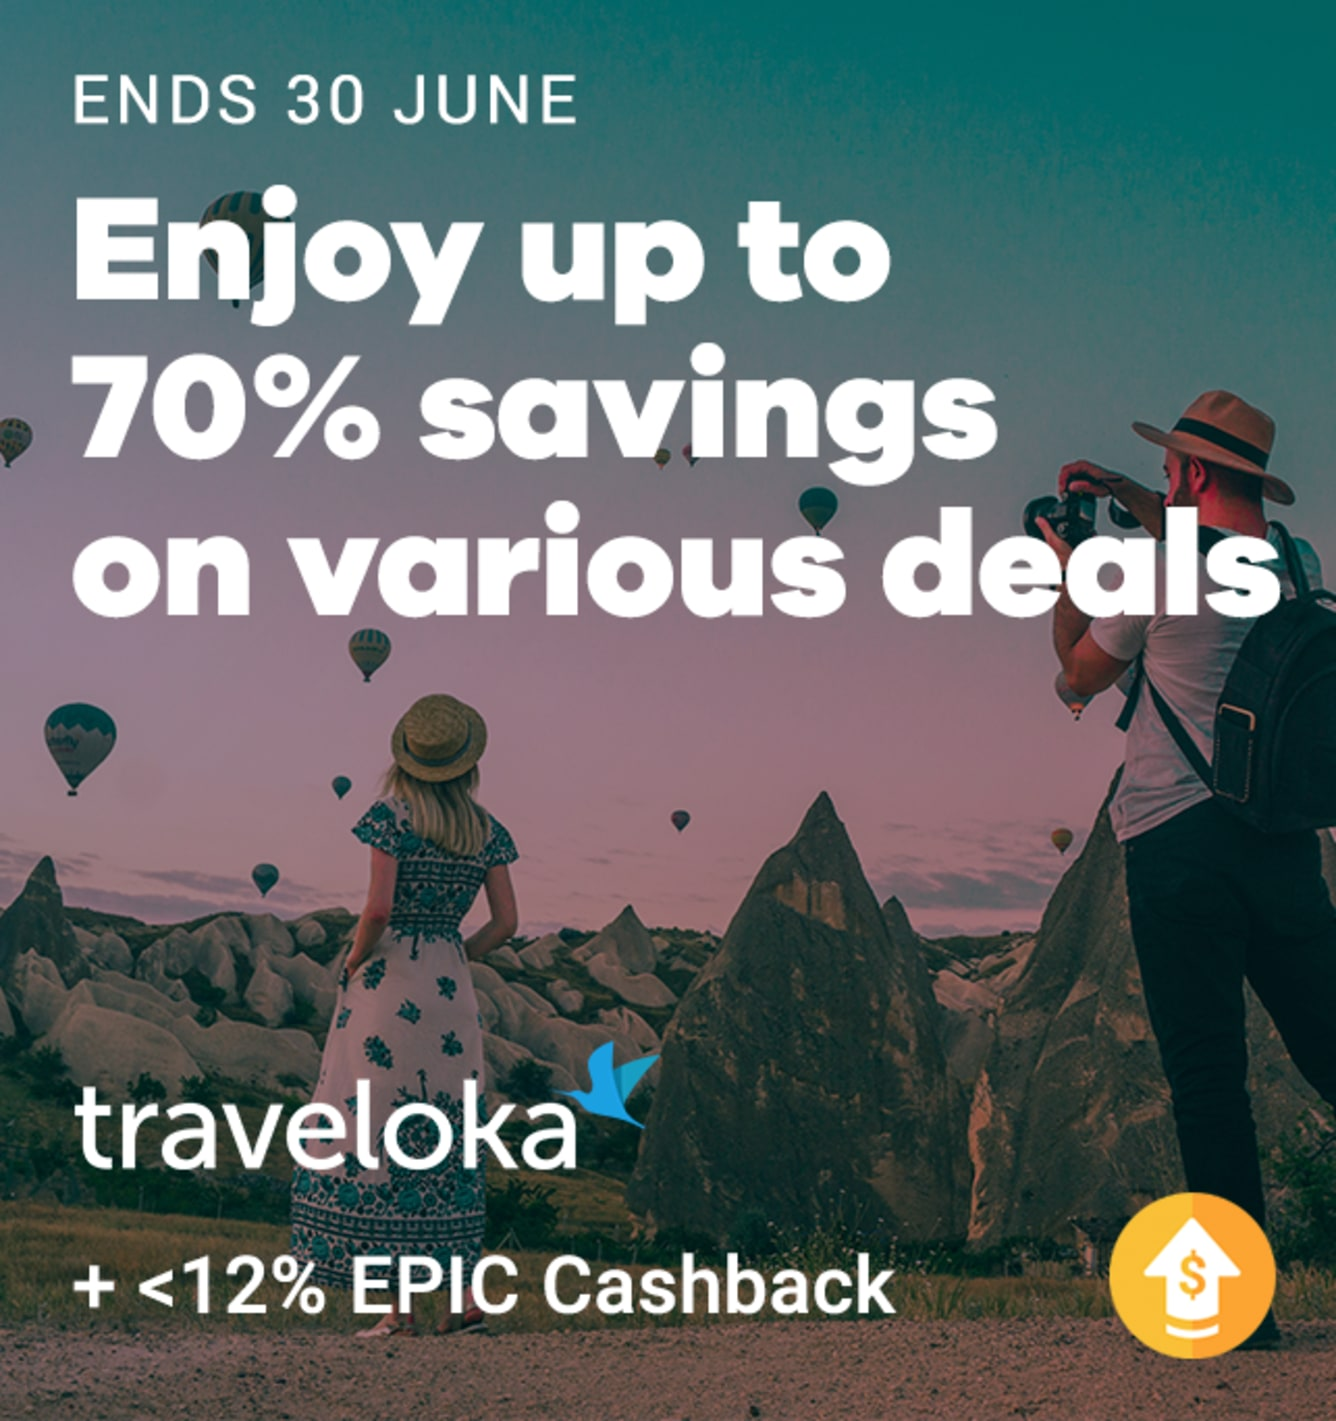 Traveloka Up to 12% Upsized Cashback